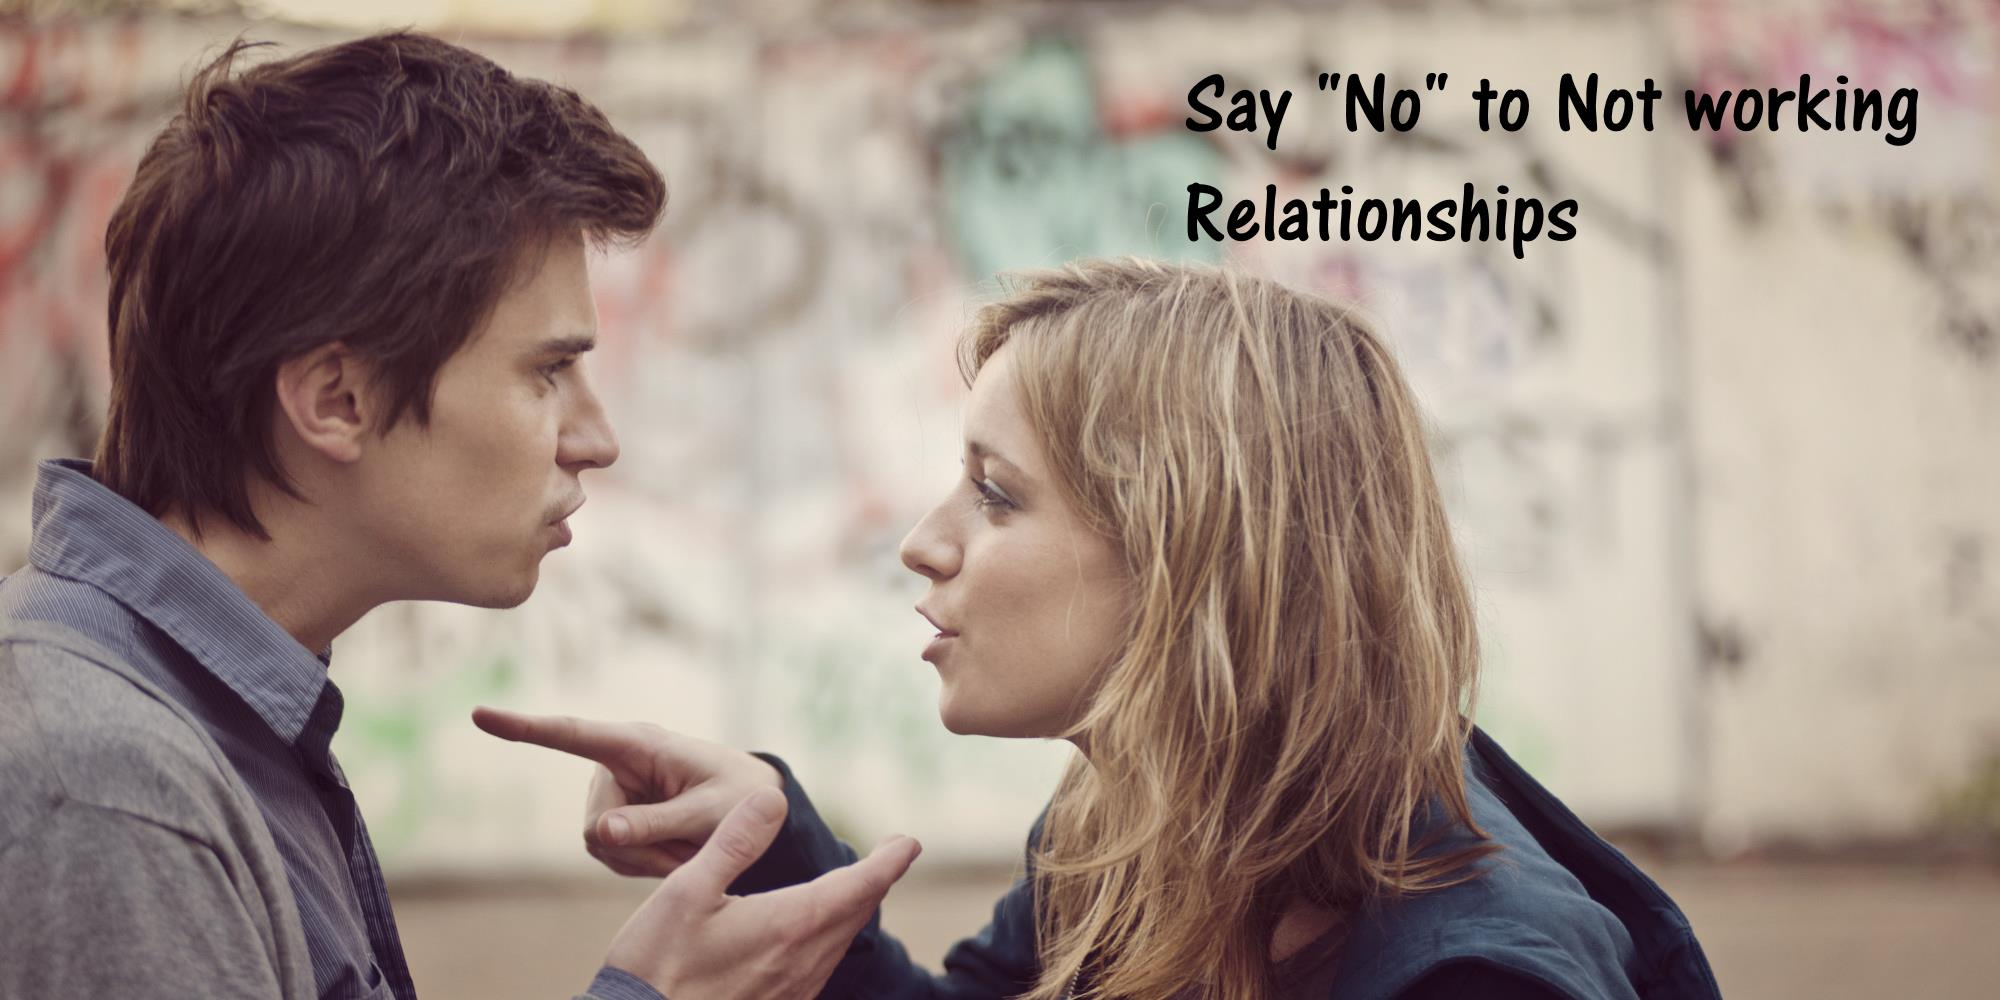 Say No to Not Working RelationShips